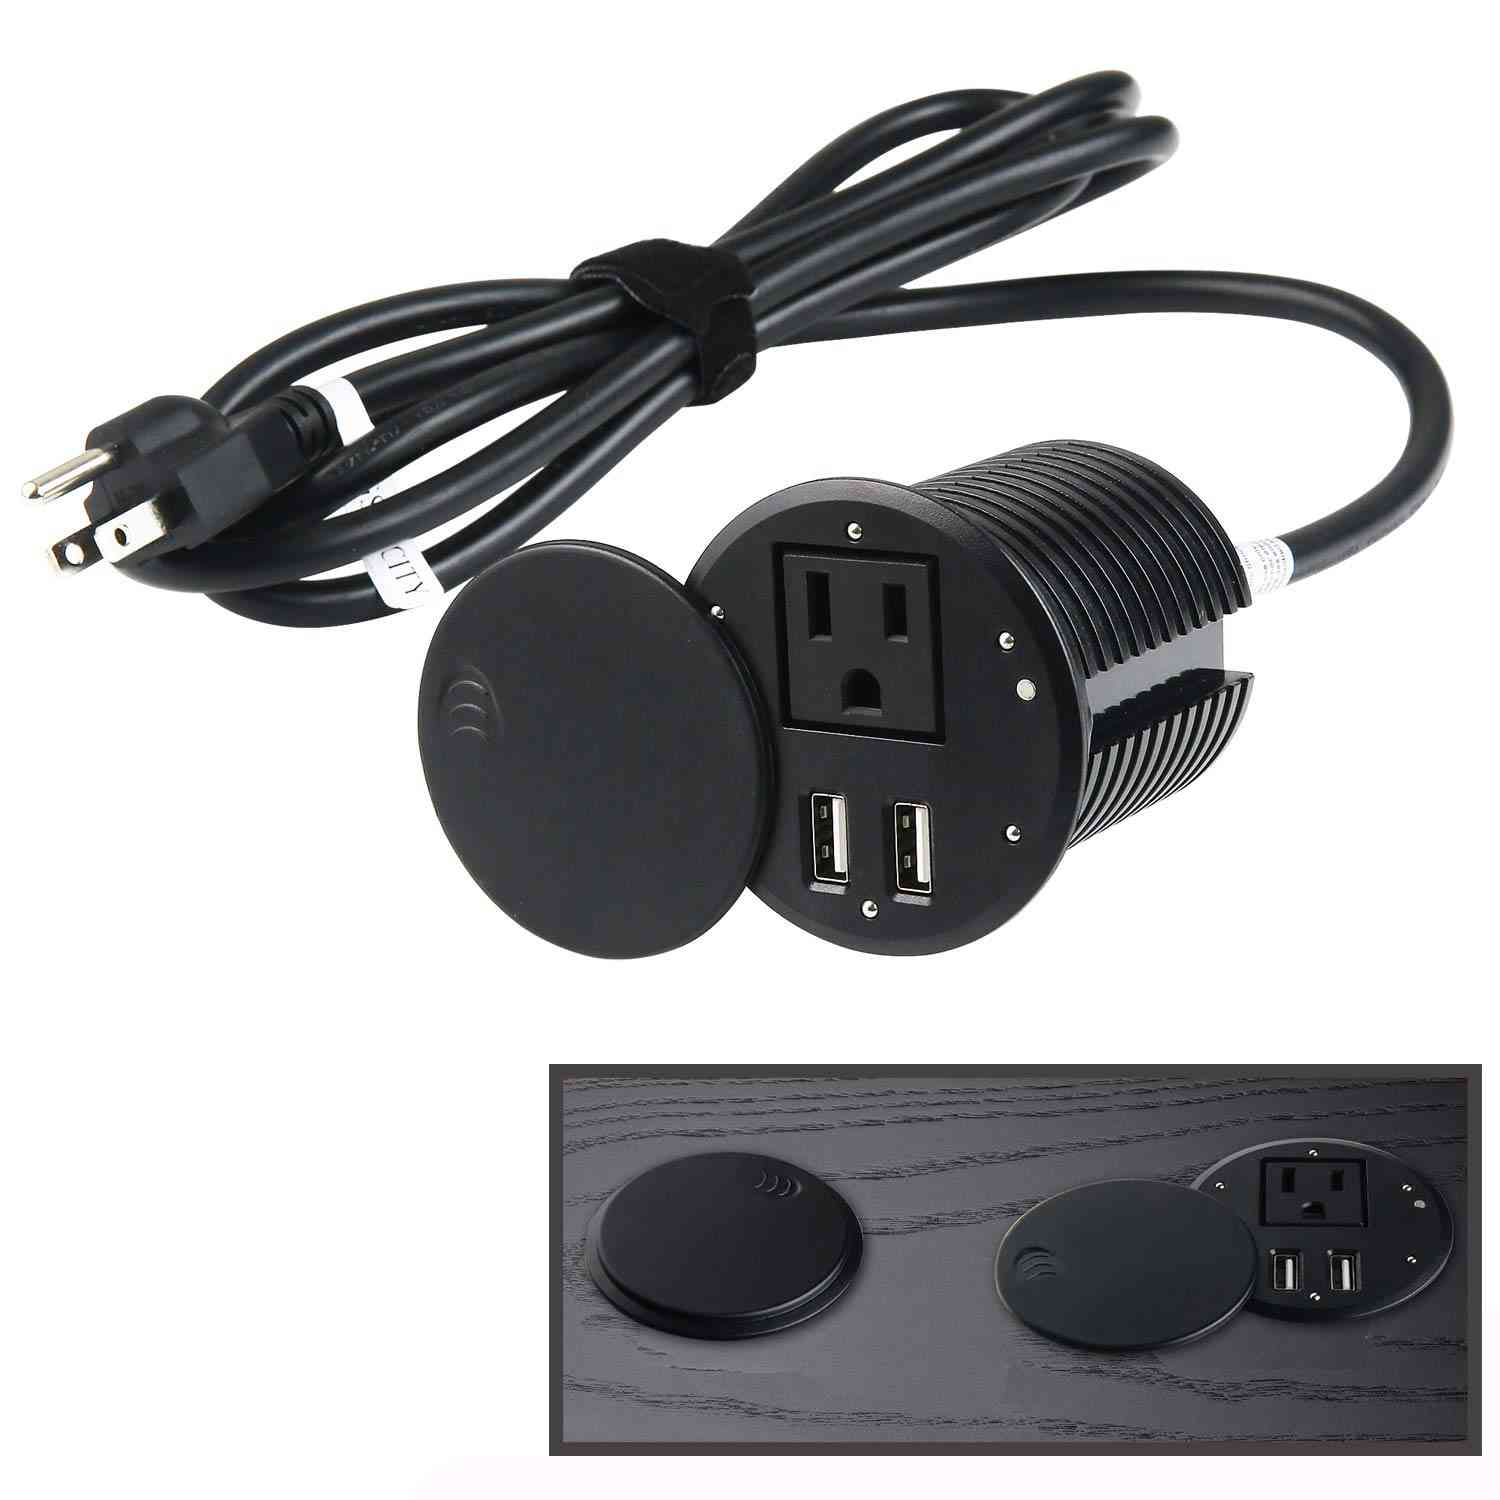 conference table plugs